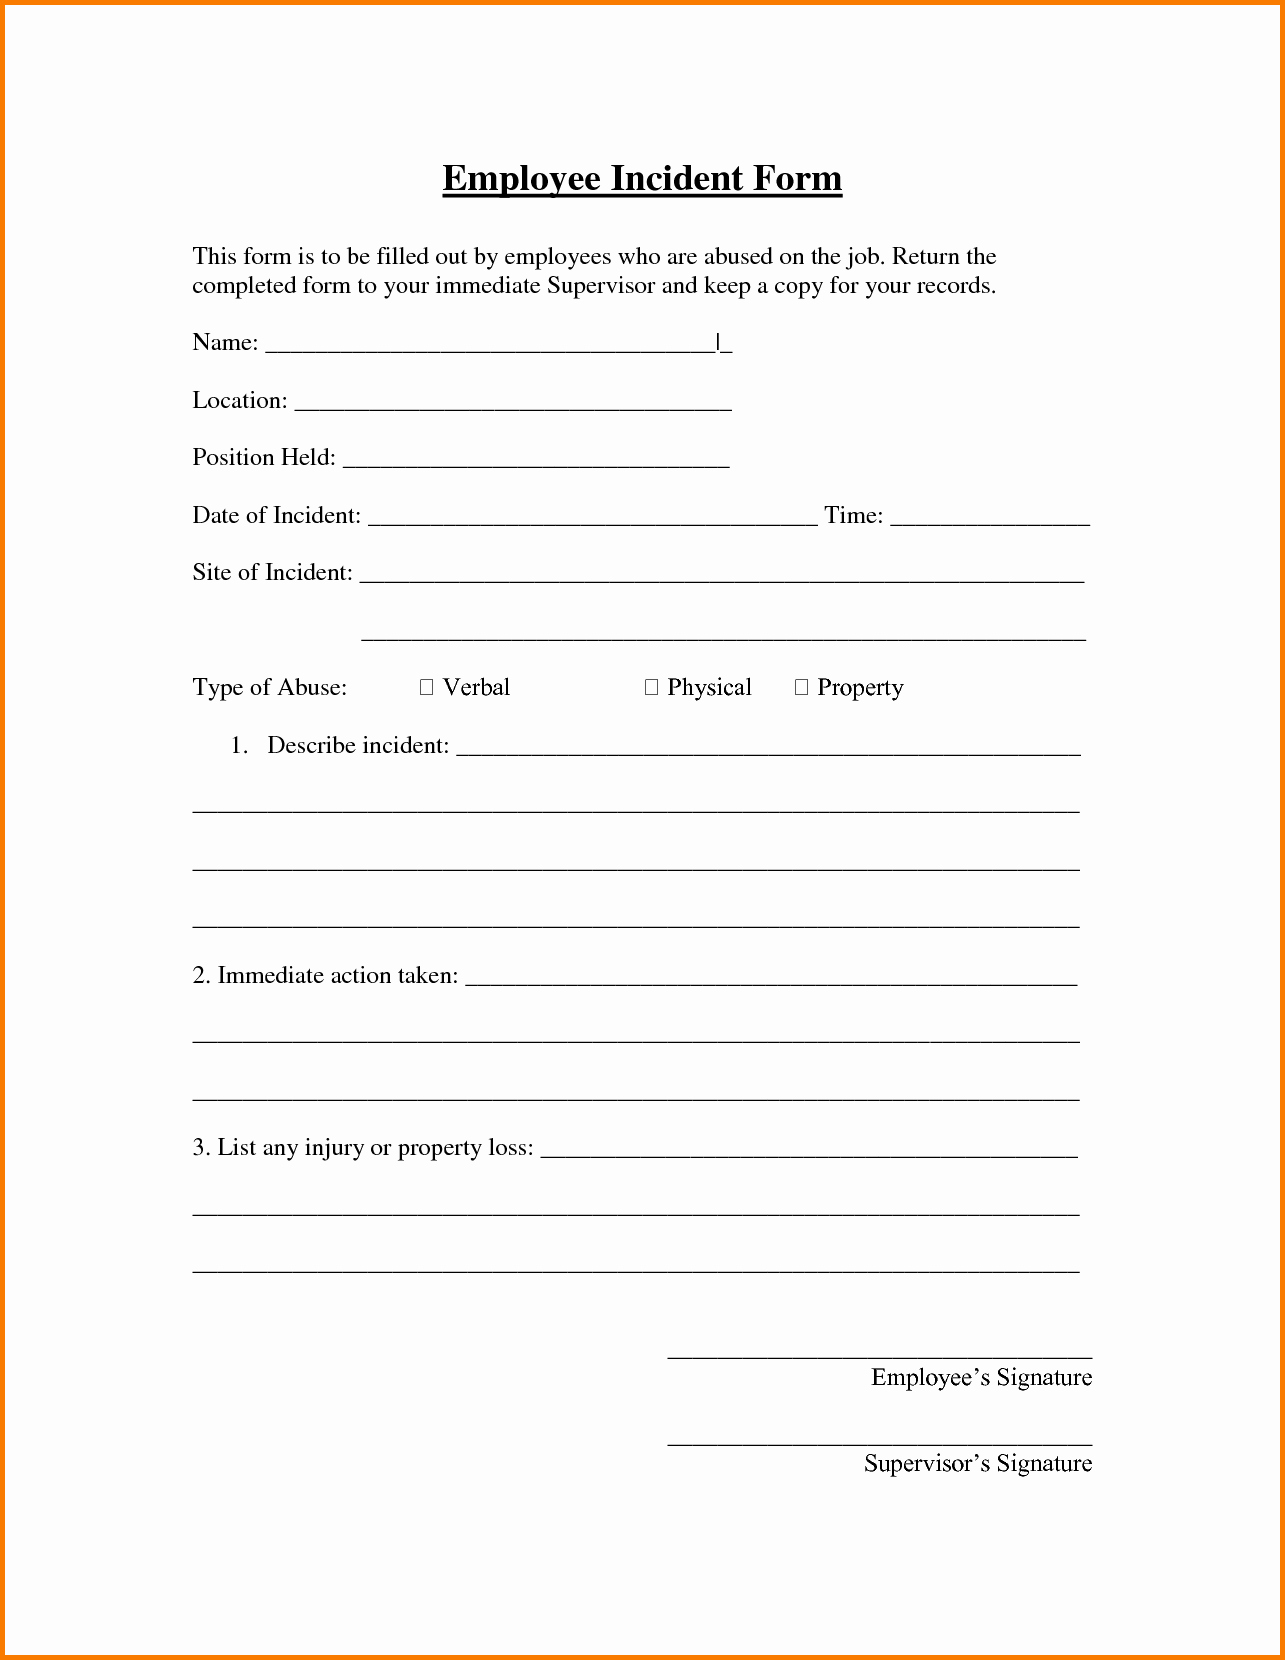 Security Incident Report Sample Best Of Employee Incident Report Sample